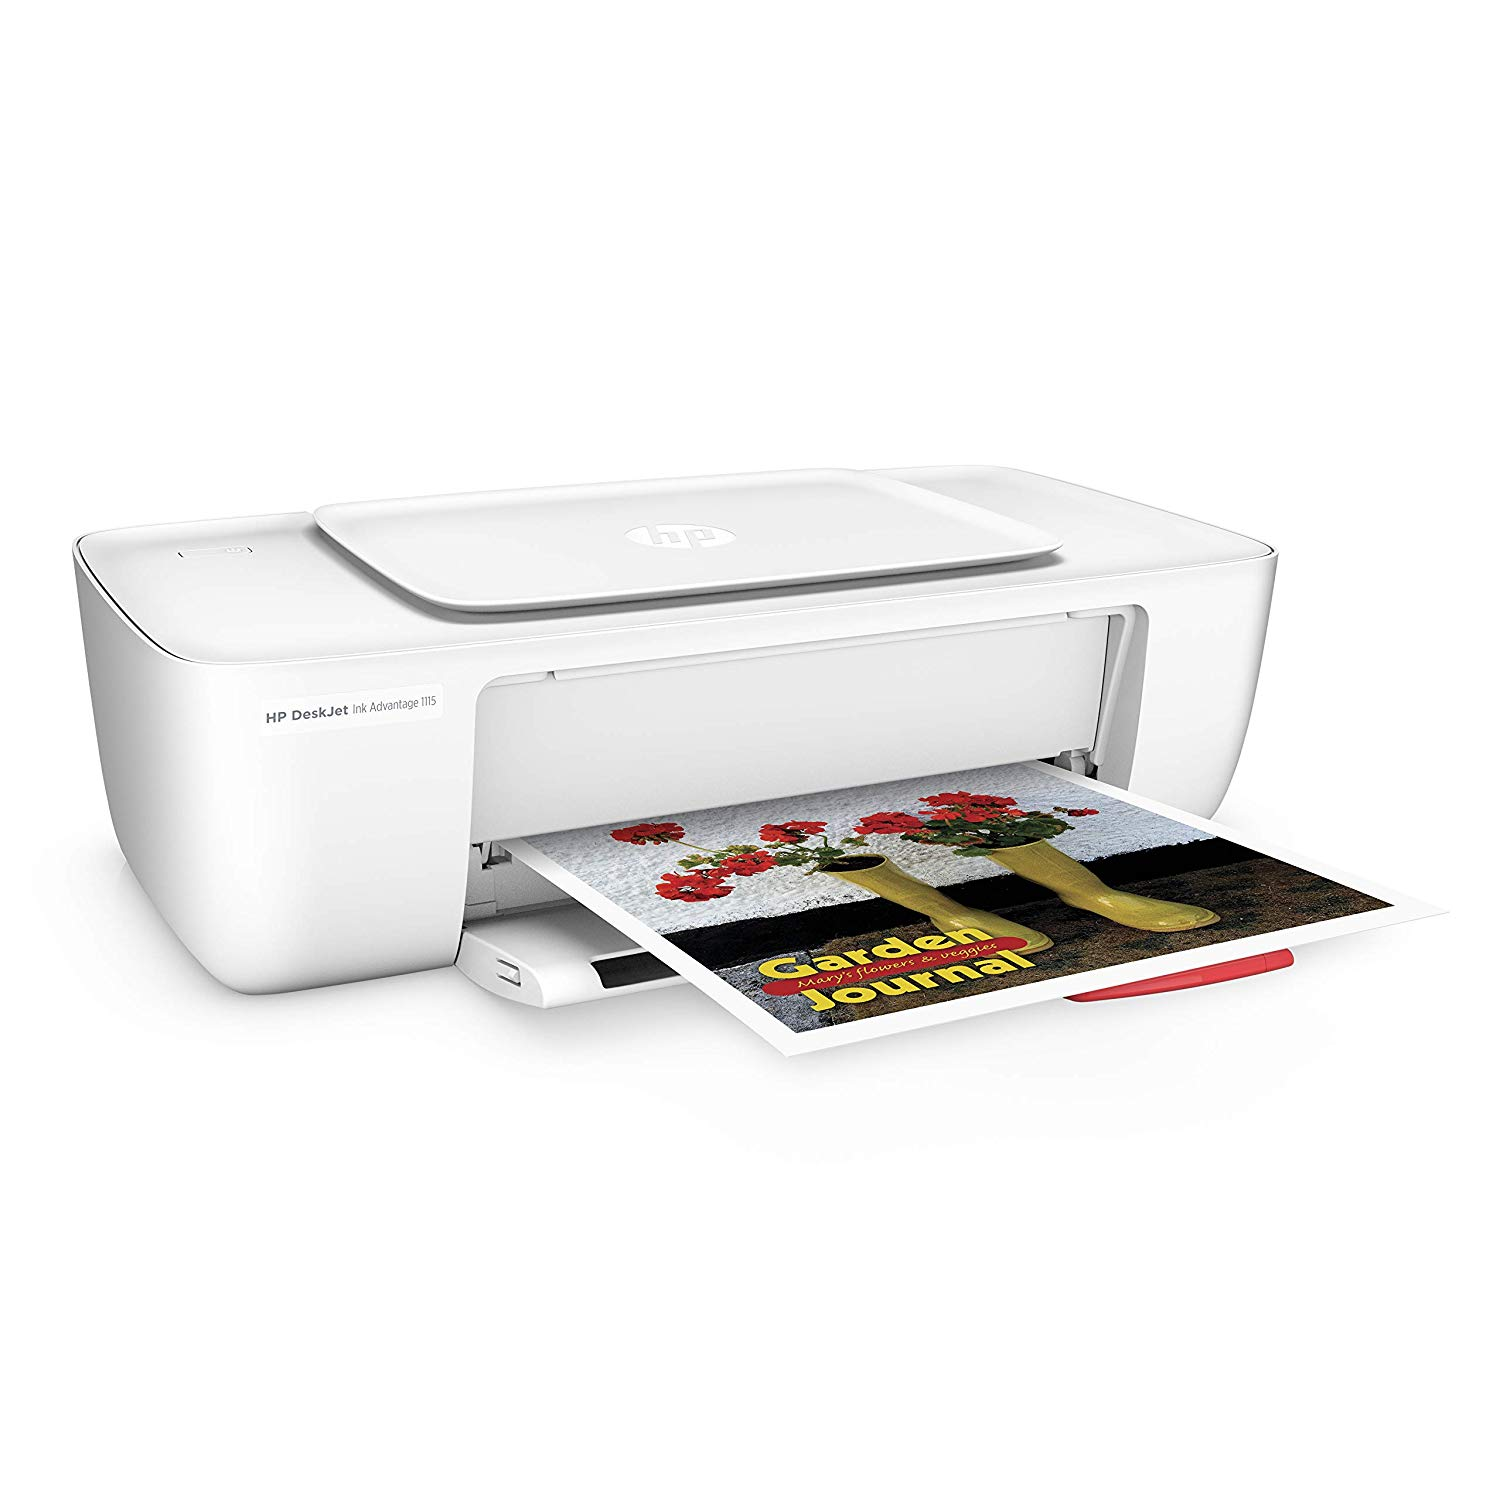 Hp Deskjet Ink Advantage 1115 Printer (F5S21A)